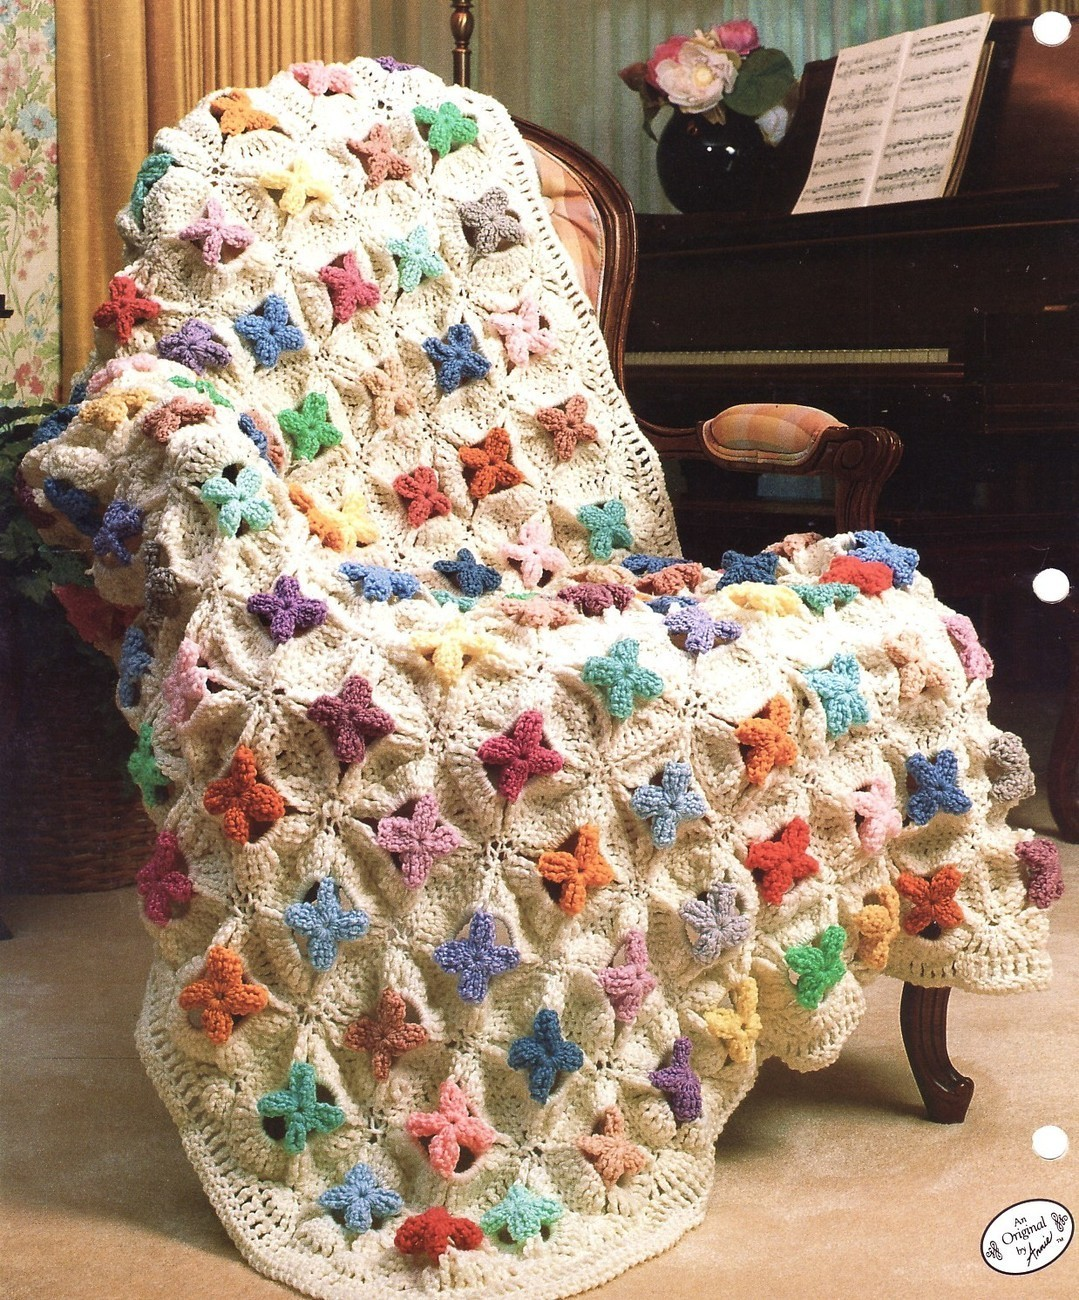 FREE CROCHET QUILTS PATTERNS Crochet Tutorials